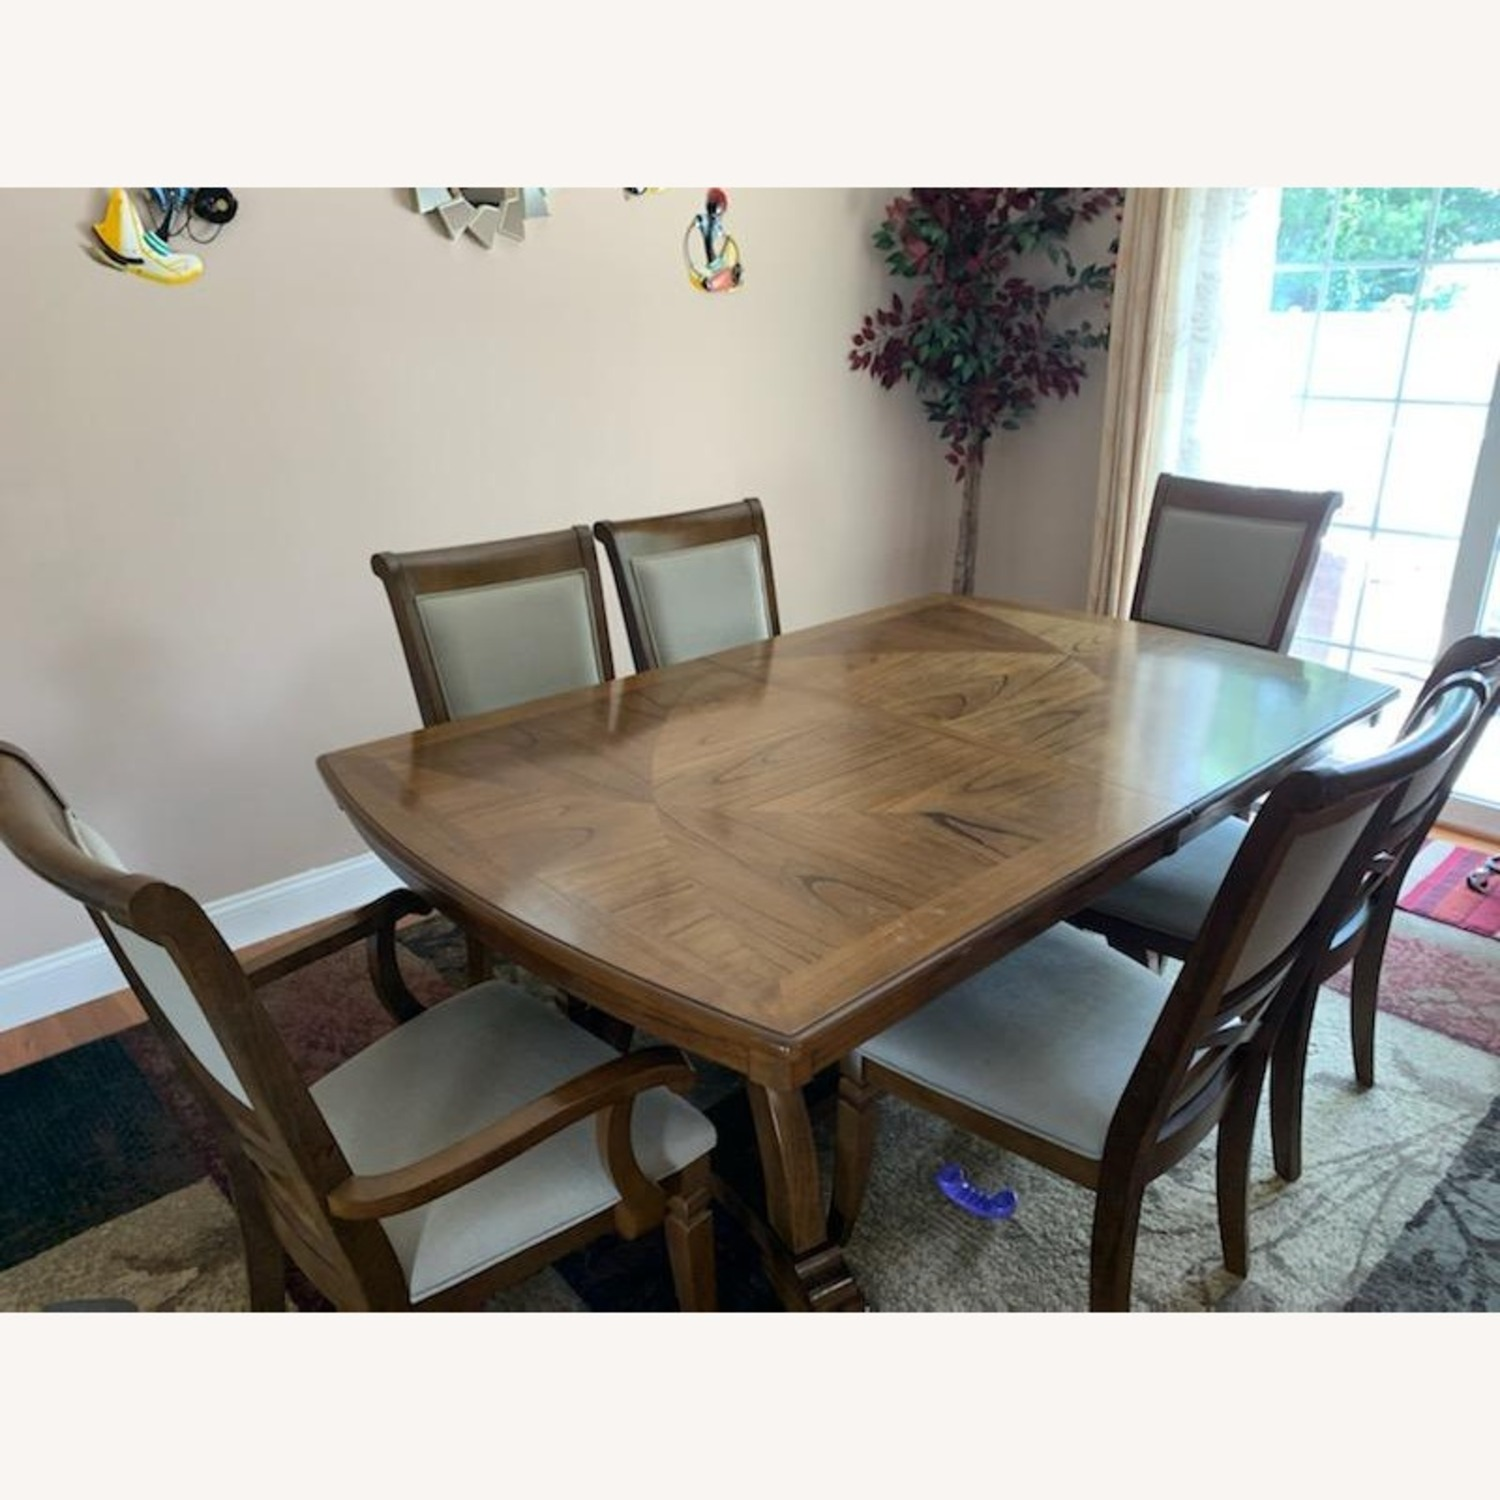 Raymour & Flanigan Dining Table set with 6 chairs - image-2